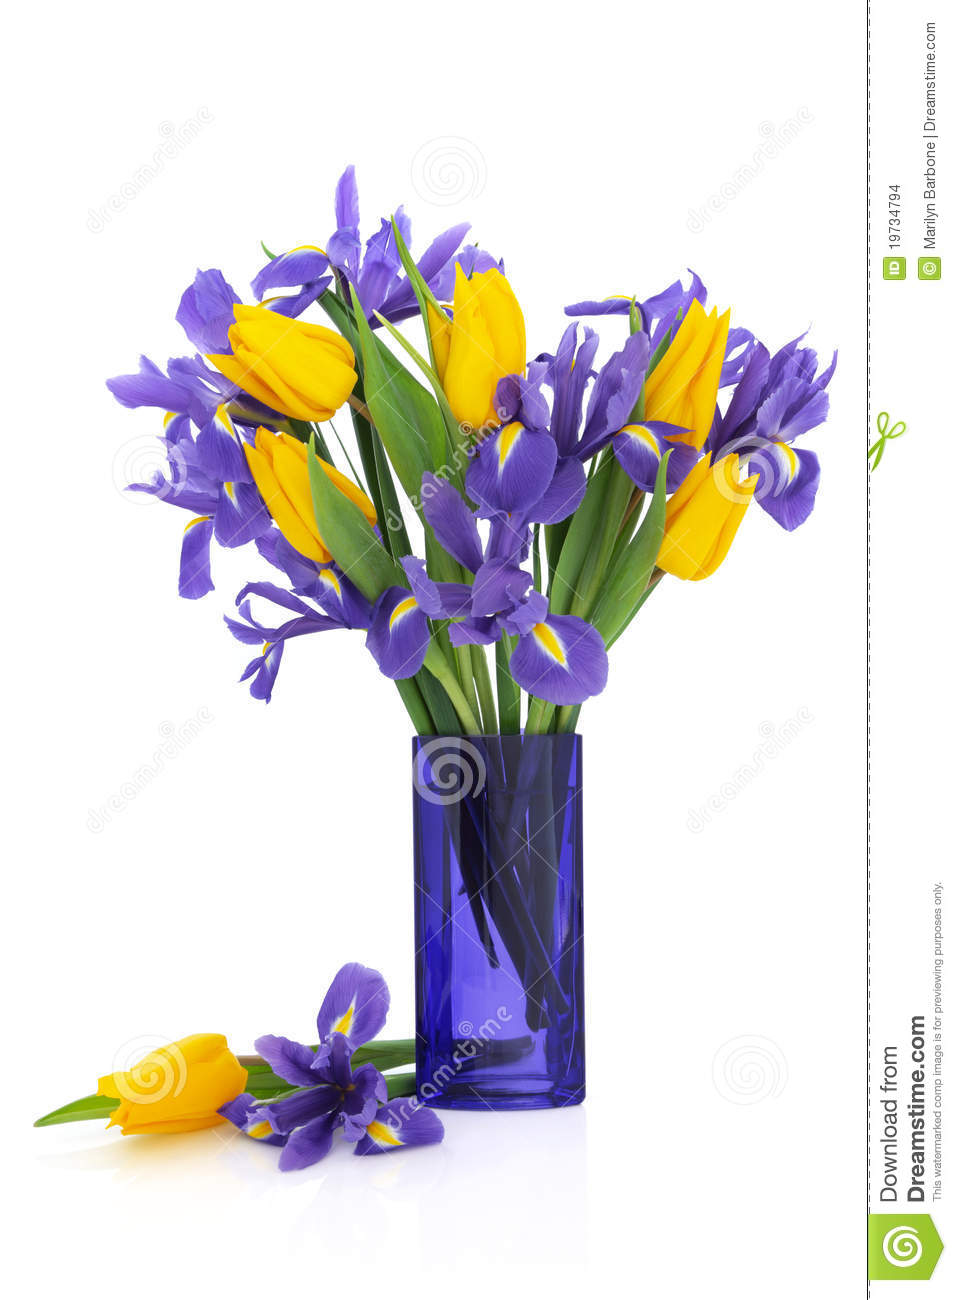 Iris And Tulip Flowers Stock Photo Image Of Glass Vase 19734794